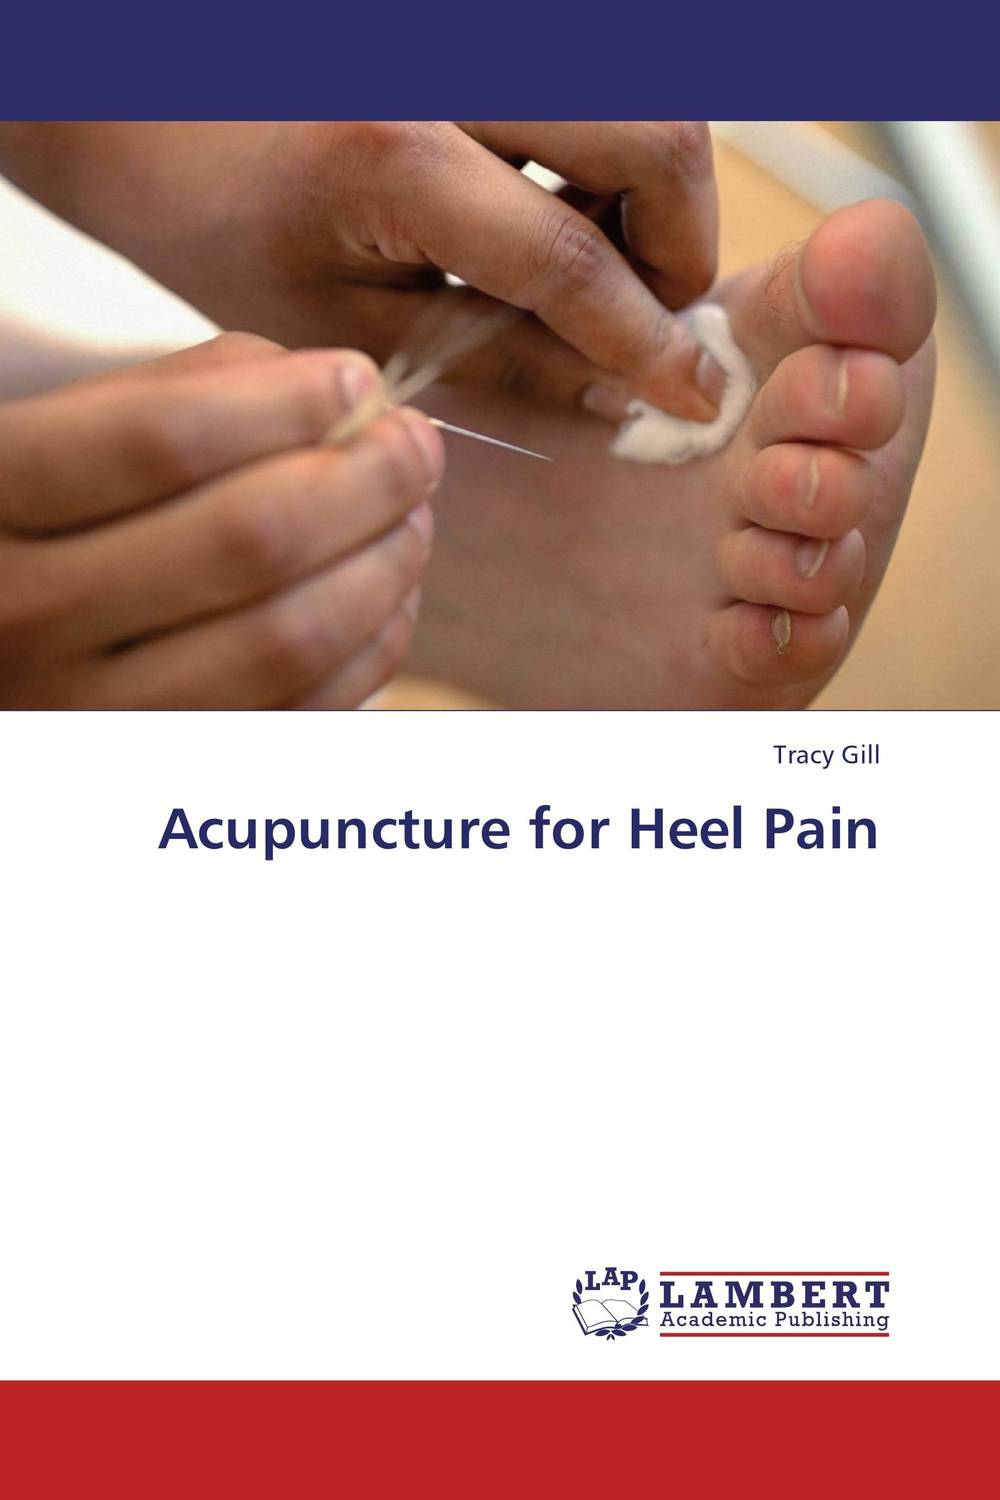 Acupuncture for Heel Pain